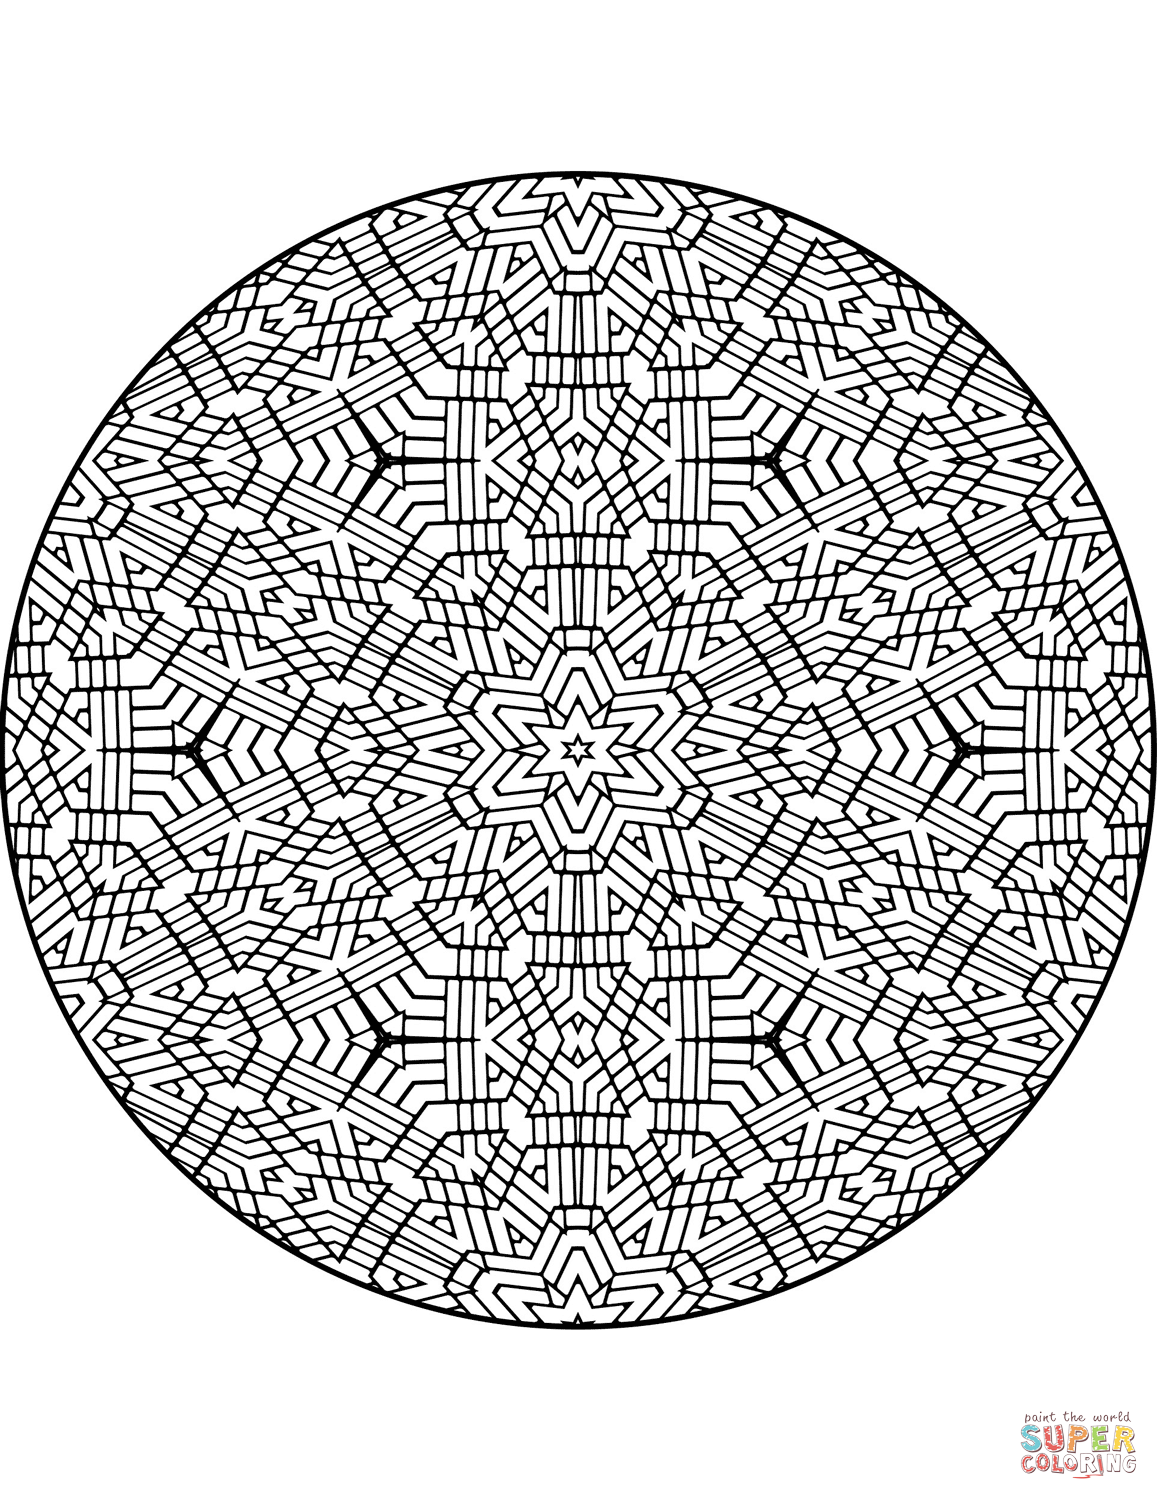 Advanced mandalas coloring pages.